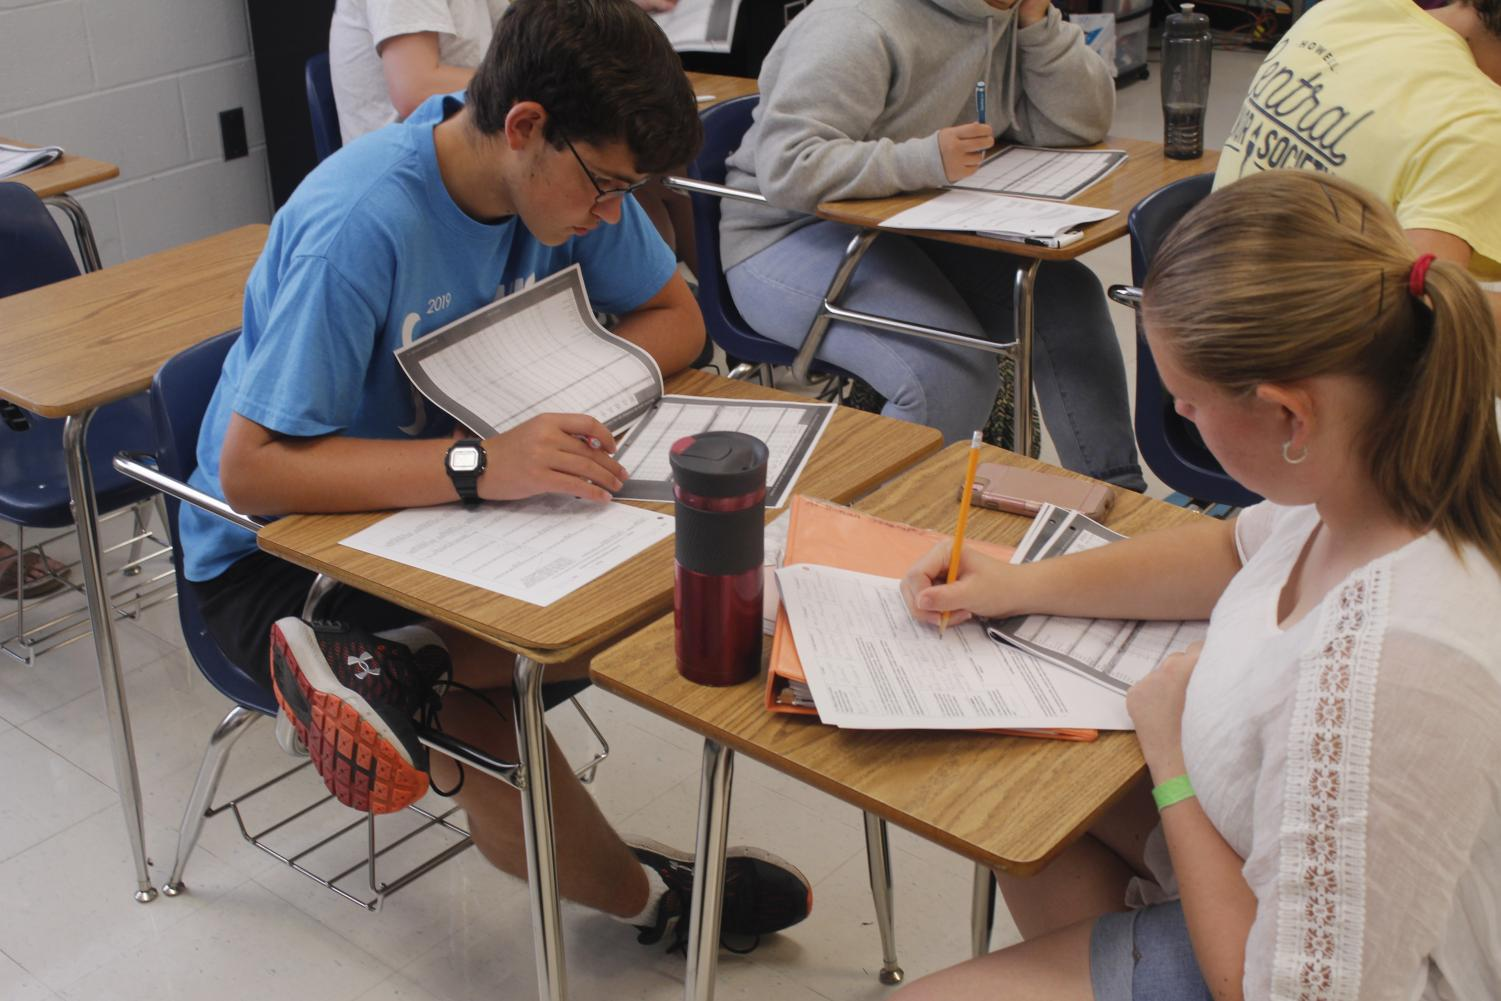 HARD AT WORK - Senior Kyle Bryan focuses and works on homework in AP Human Geography, a college level course similar to the Calculus 3 class he is enrolled in at SCC